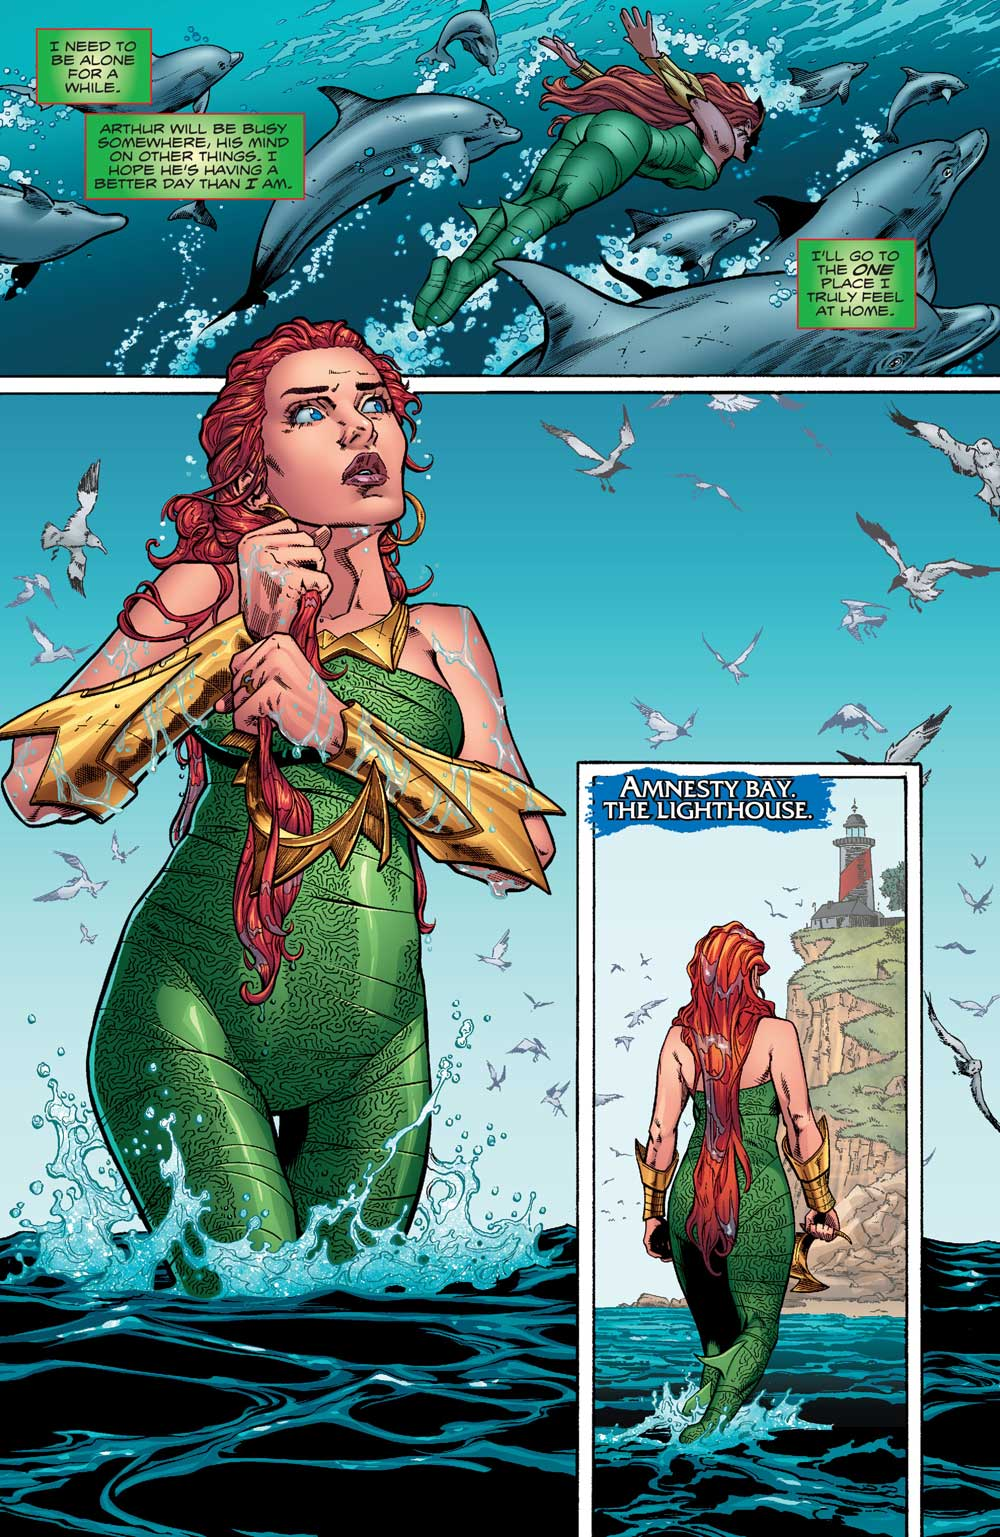 Aquaman #10 by Dan Abnett, Brad Walker, Andrew Hennessy, and Gabe Eltaeb